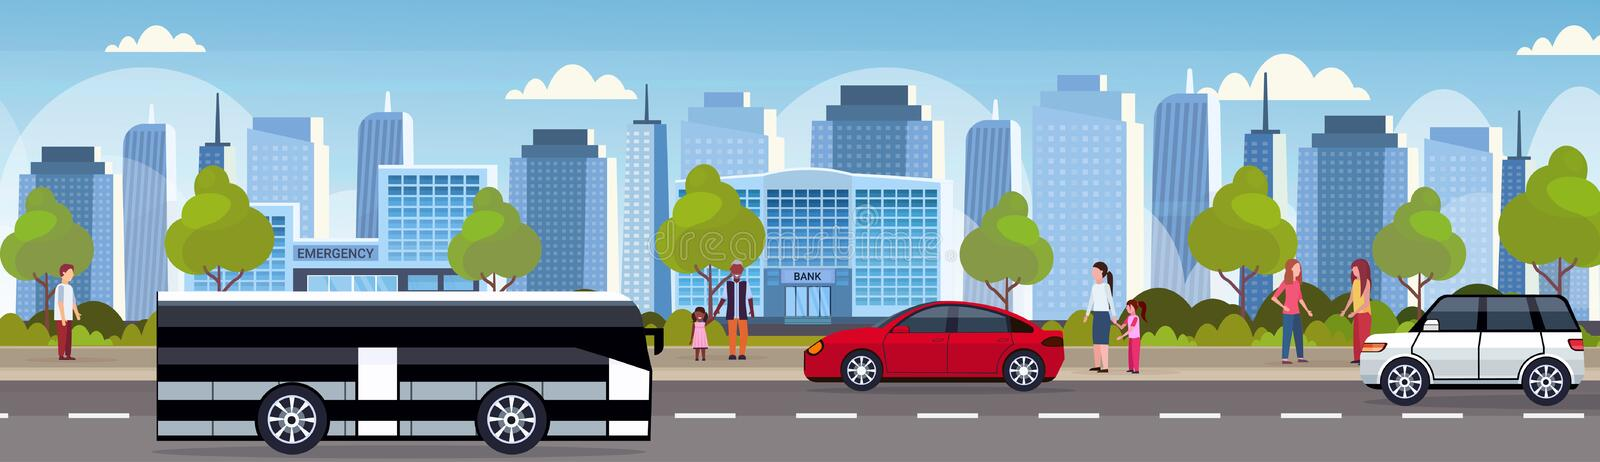 Cars and passenger bus driving asphalt road urban city panorama high skyscrapers cityscape background skyline flat. Horizontal banner vector illustration royalty free illustration